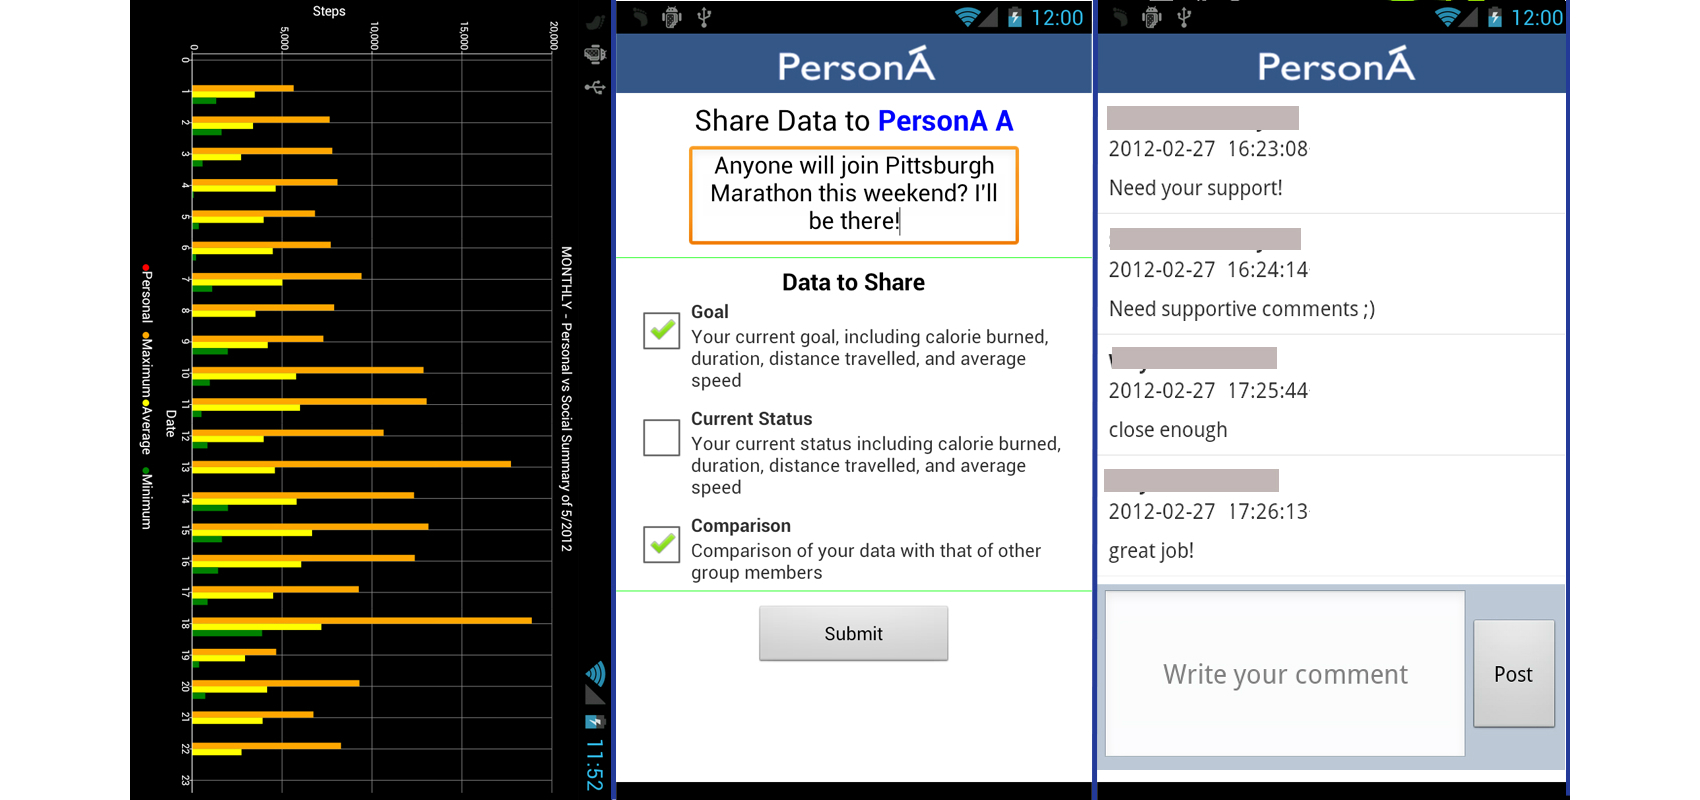 JMU - A Persuasive and Social mHealth Application for